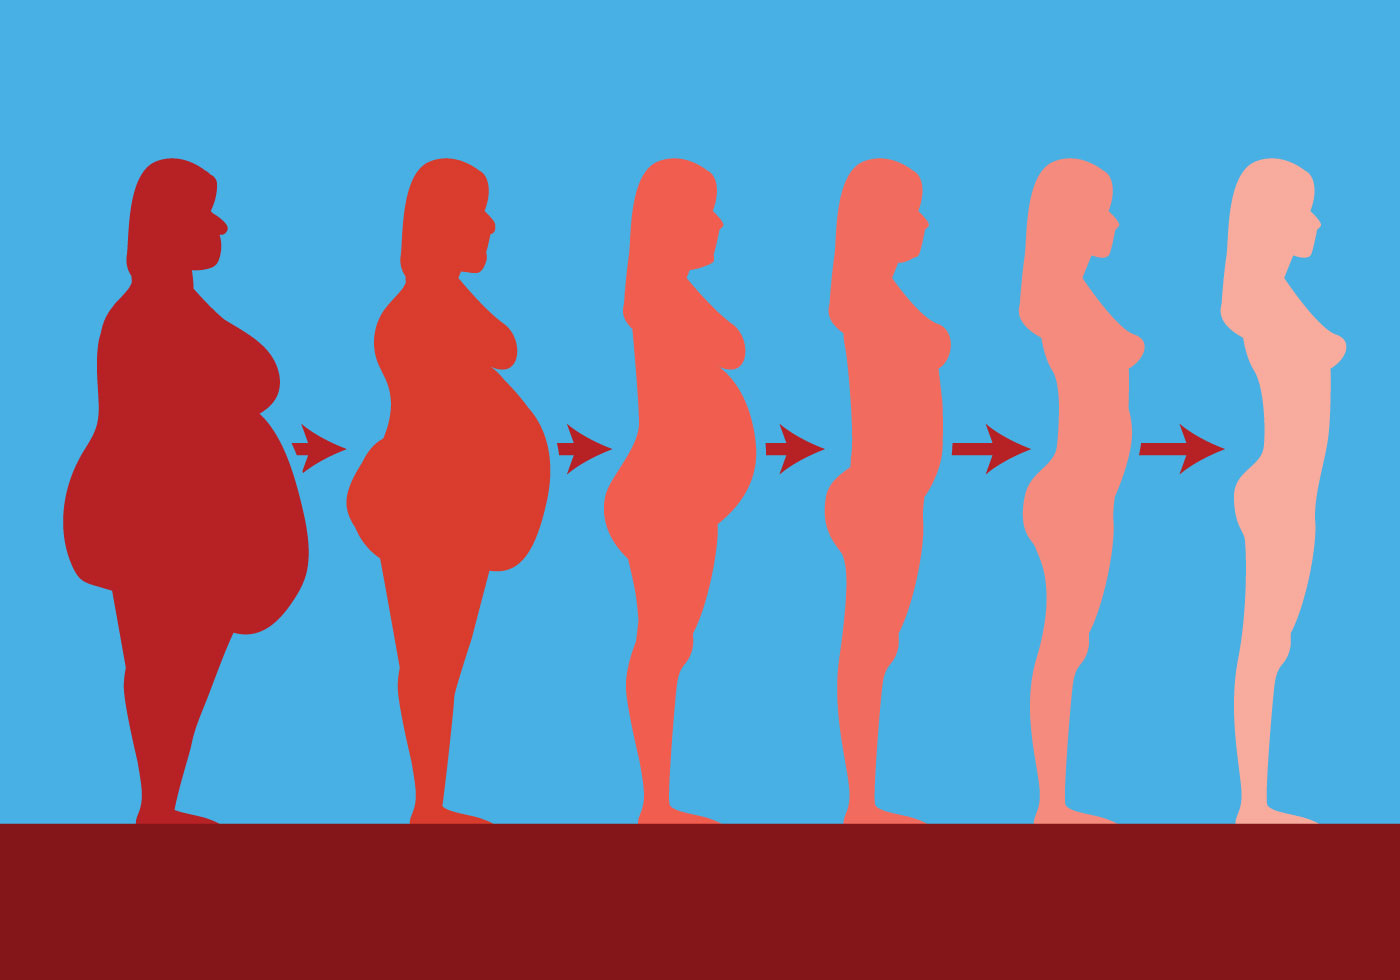 Slimming Vector Silhouettes - Download Free Vector Art ...